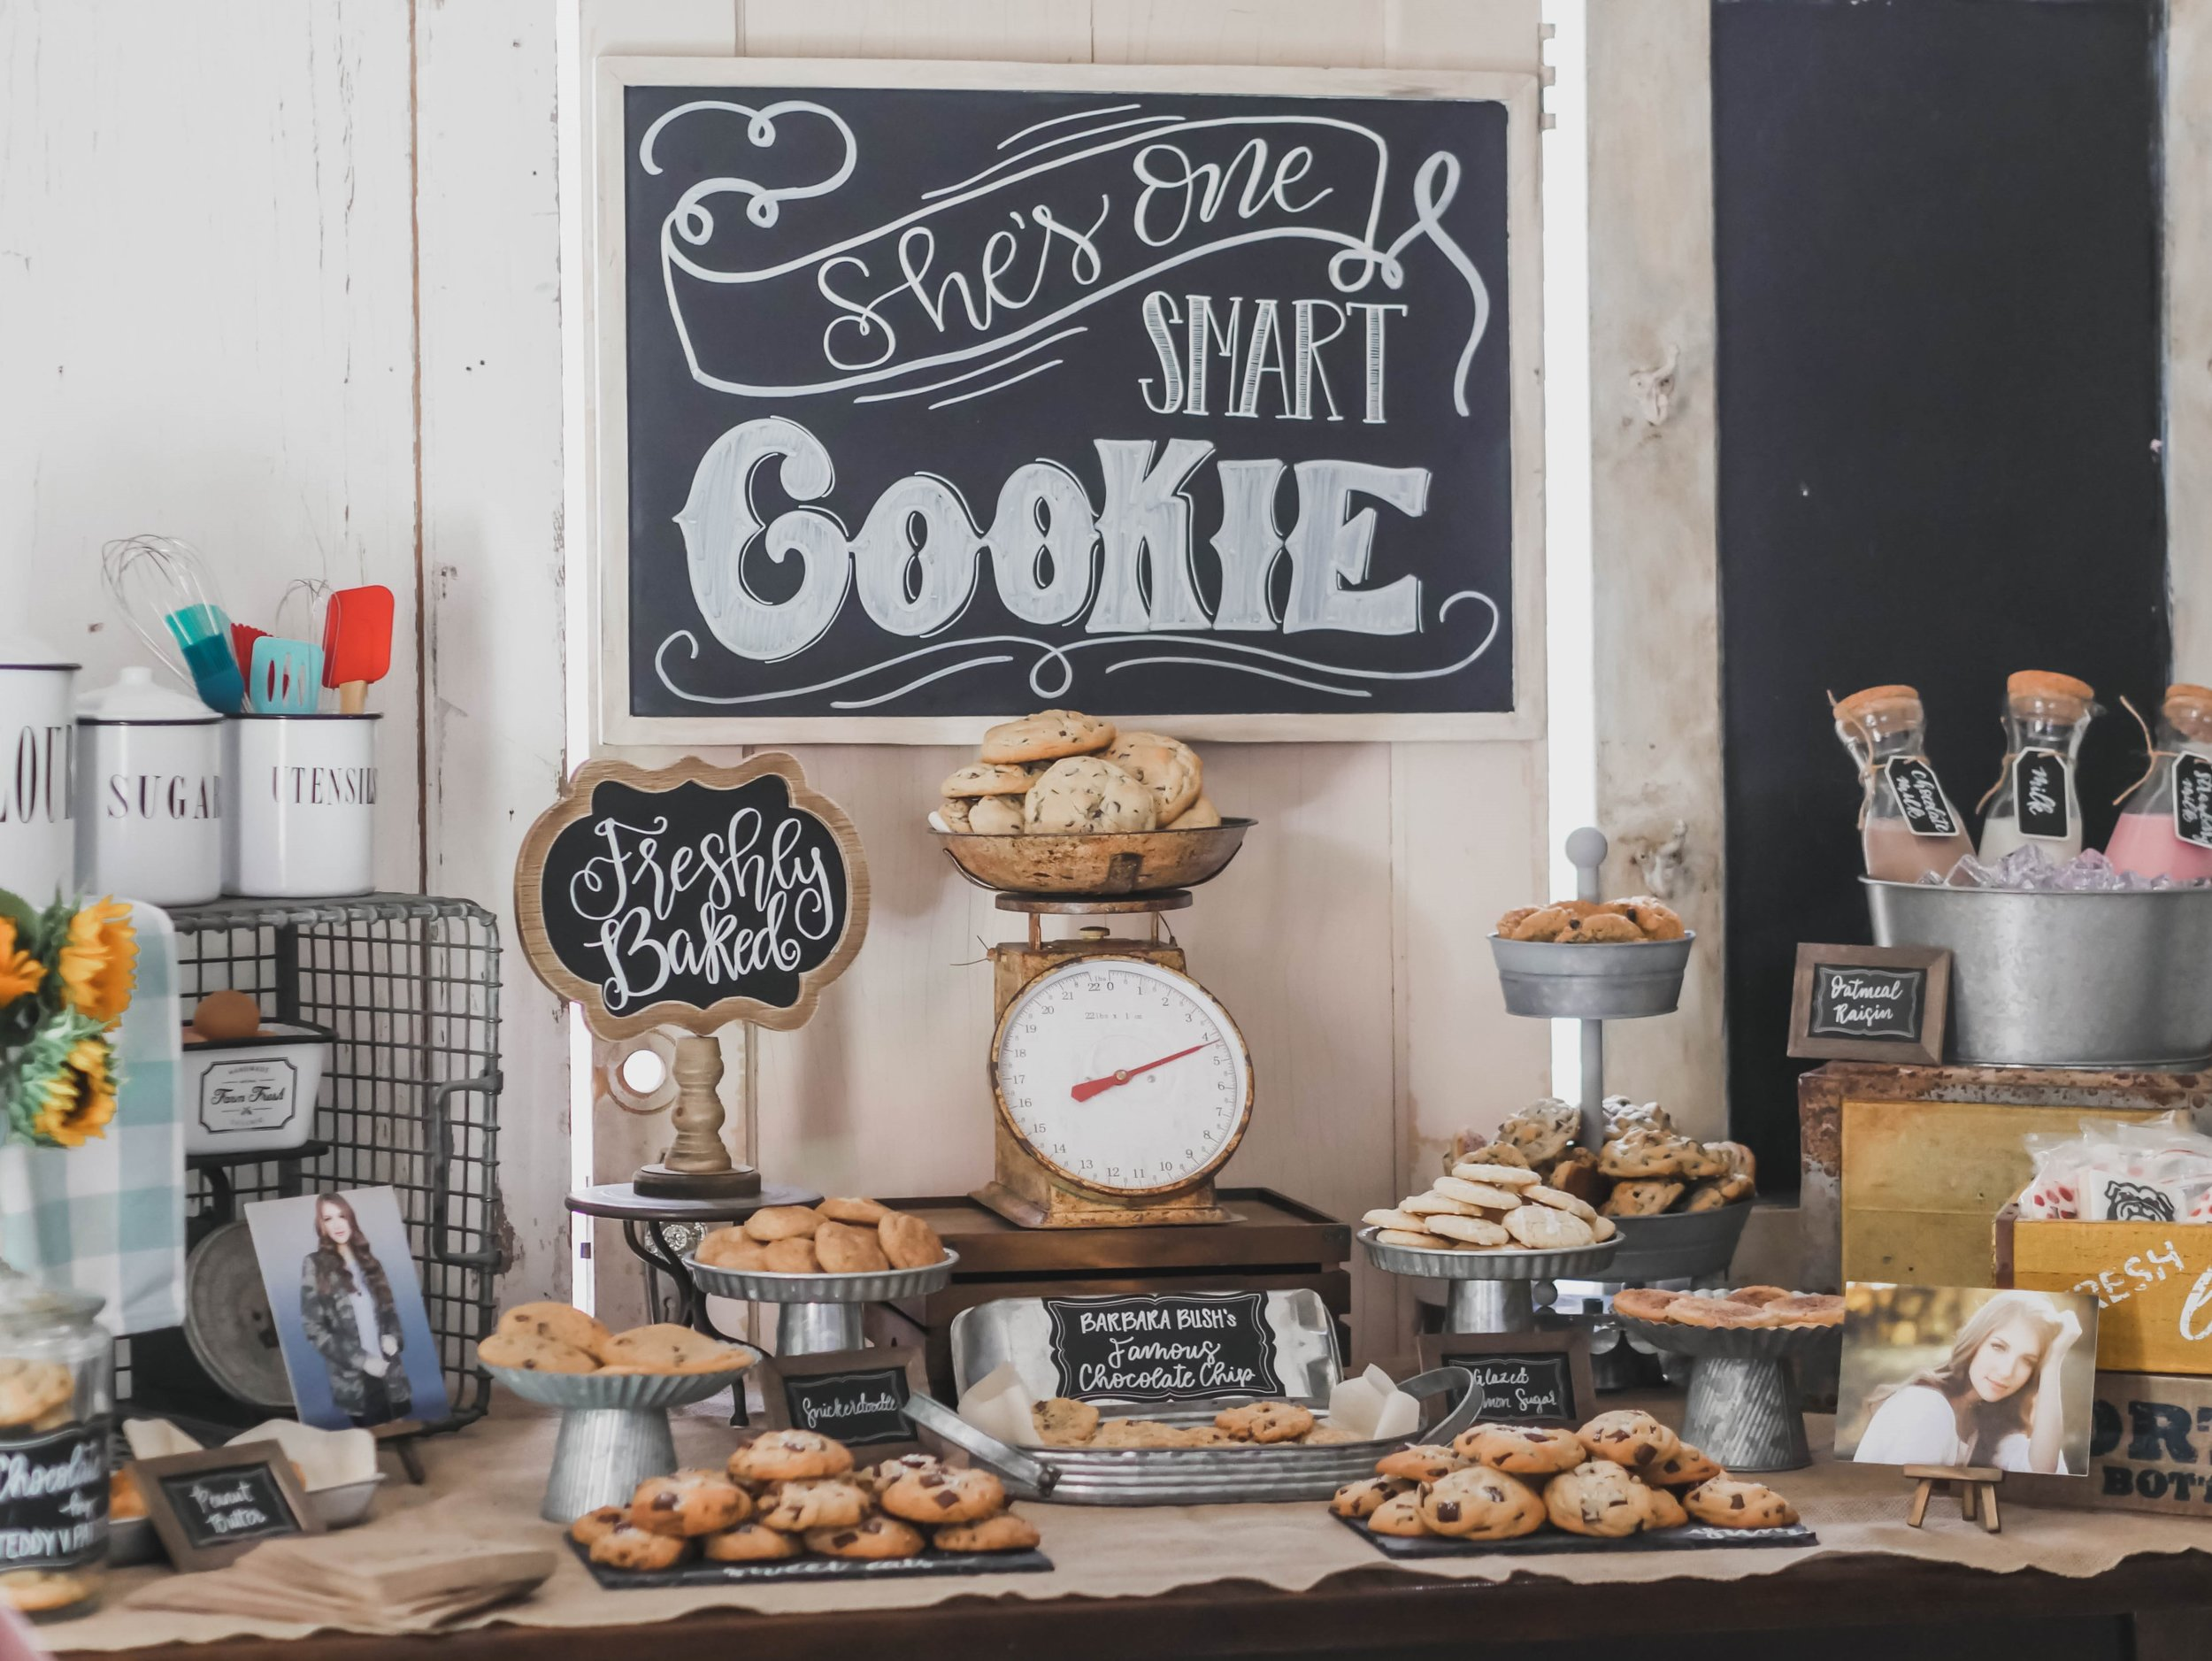 Vintage style Cookie Bar Graduation Party Ideas from Mint Event Design - party planner in Austin Texas www.minteventdesign.com #graduationparty #graduationpartyideas #partyideas #rusticpartyideas #partyinspiration #dessertbar #desserttable #chalkboardsigns